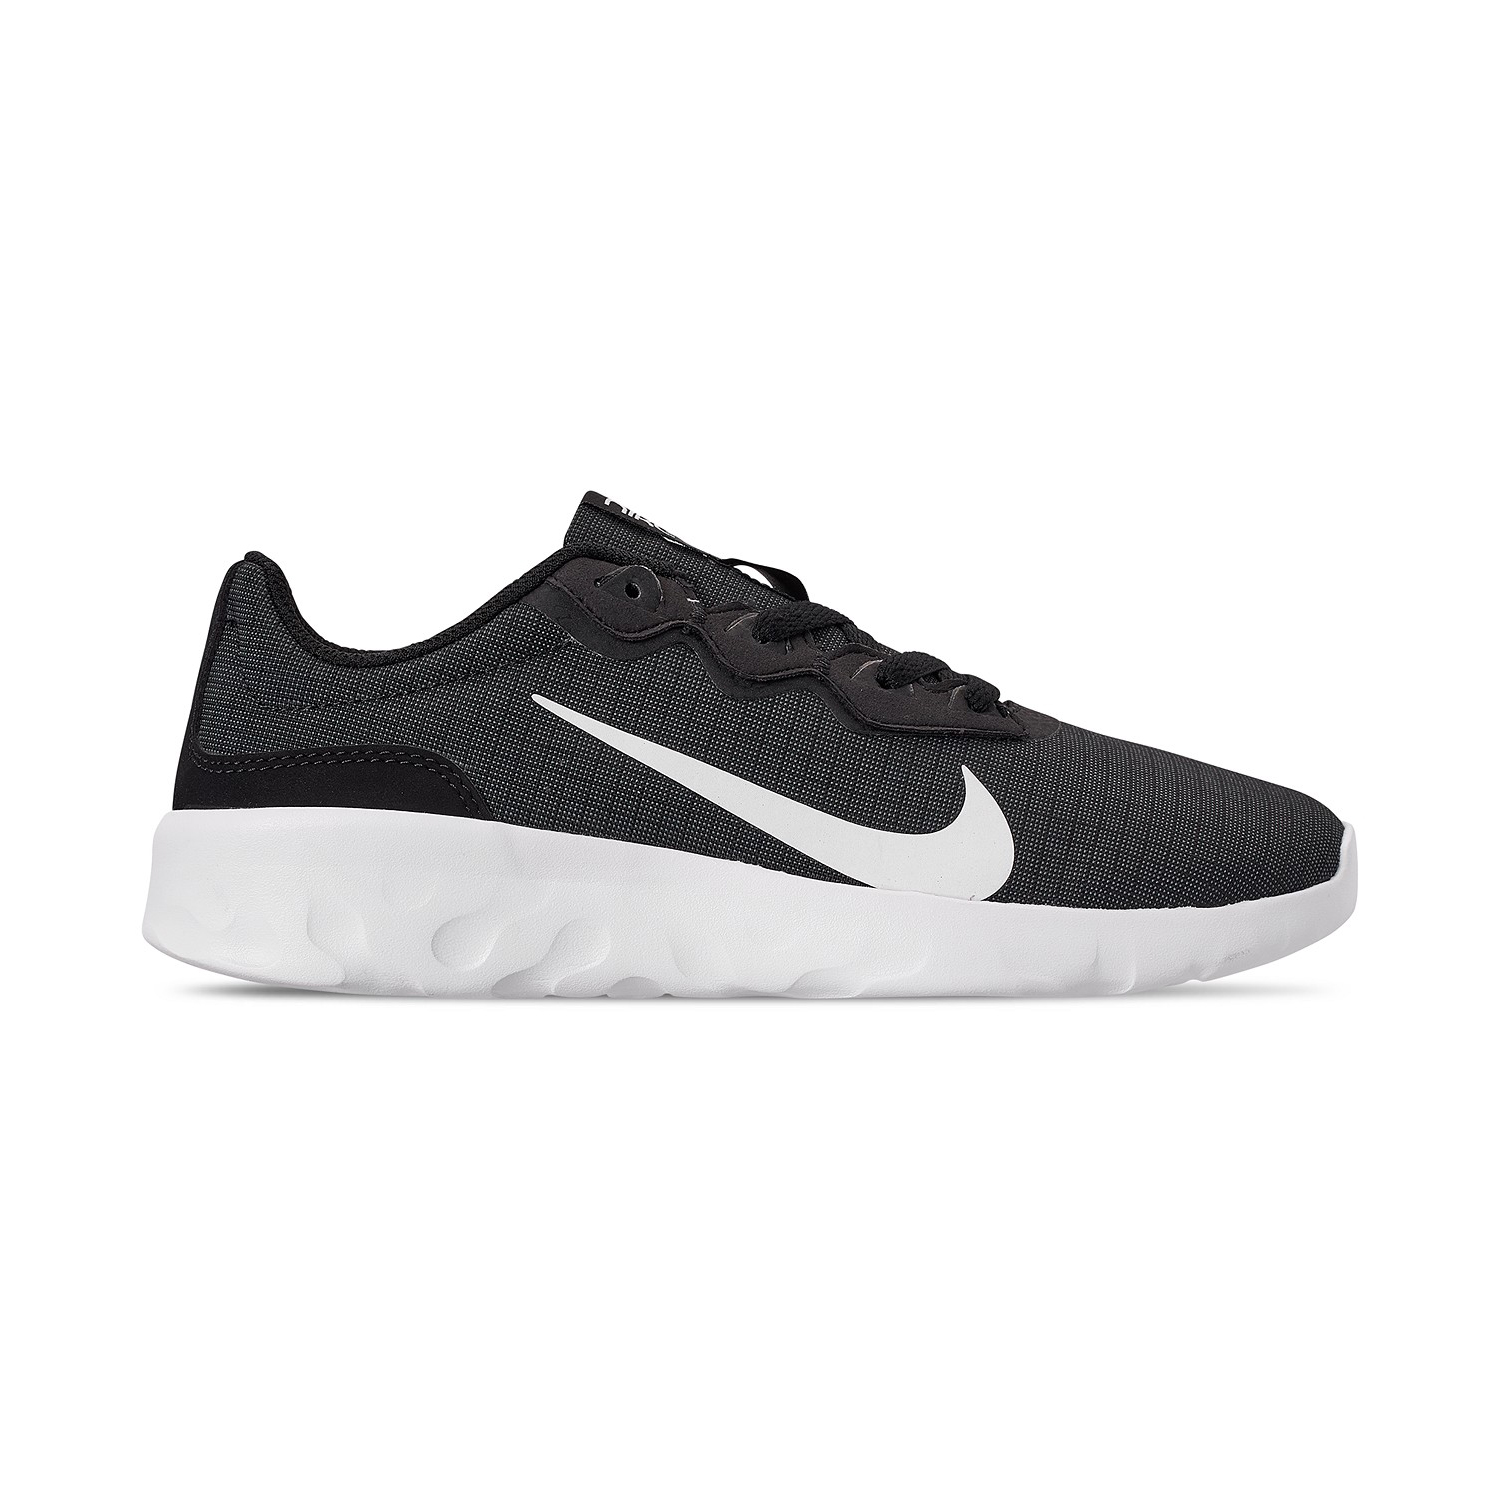 Nike Women's Explore Strada Running Sneakers